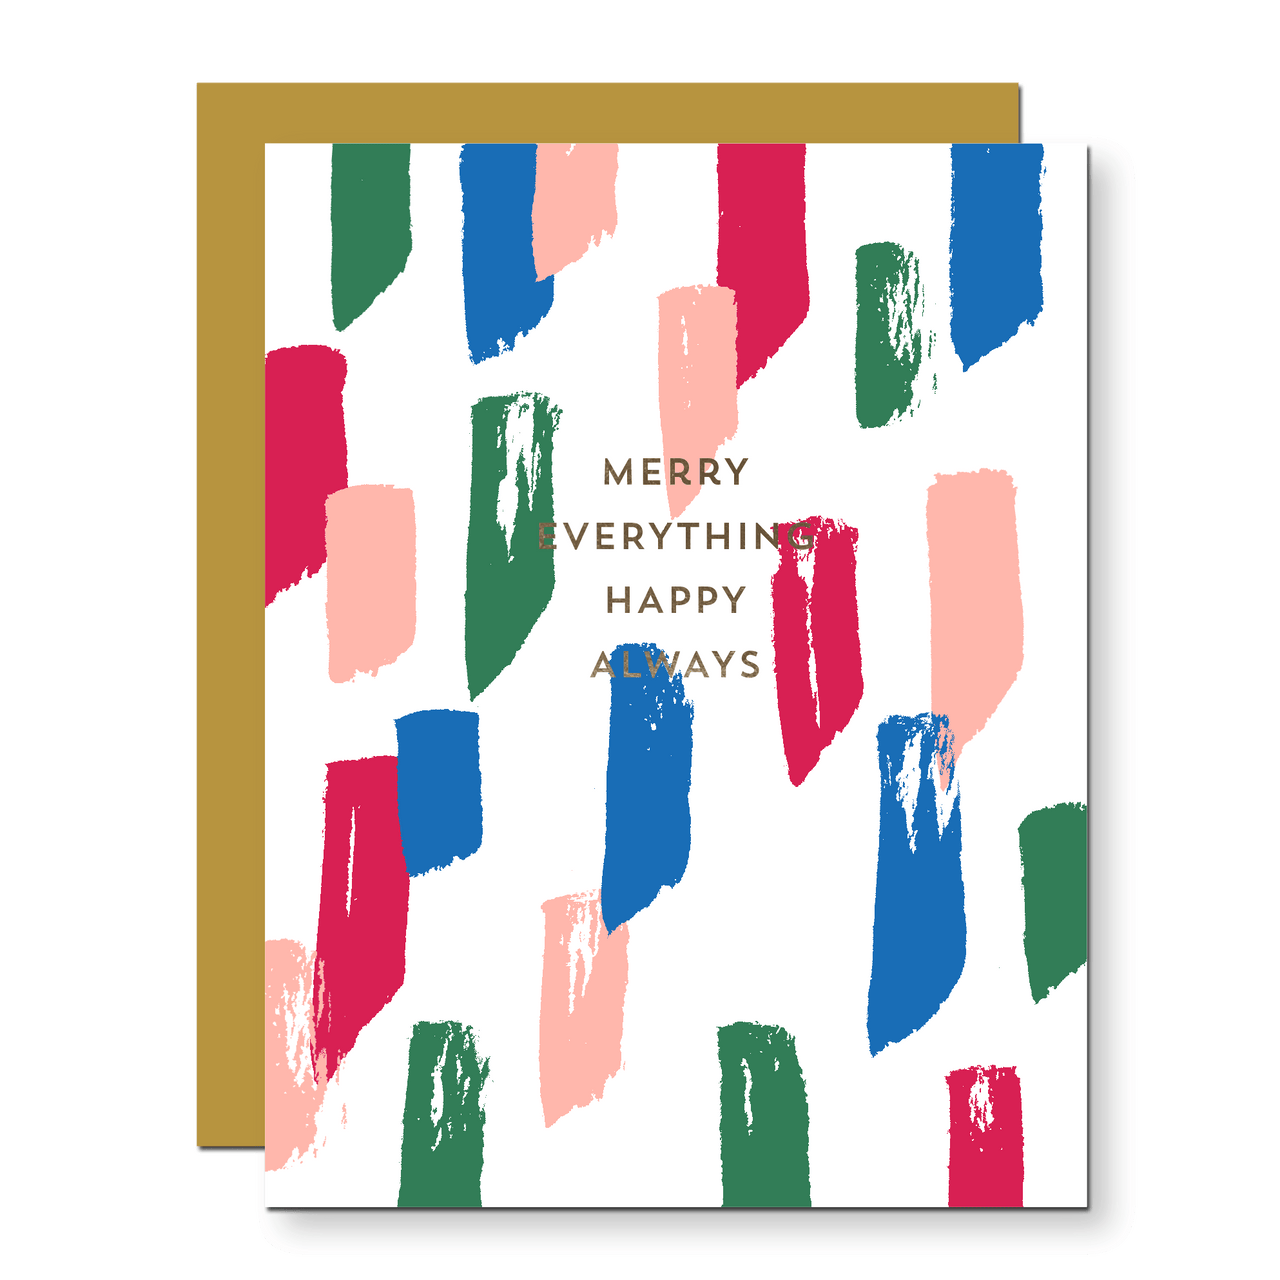 Merry Everything Holiday Card